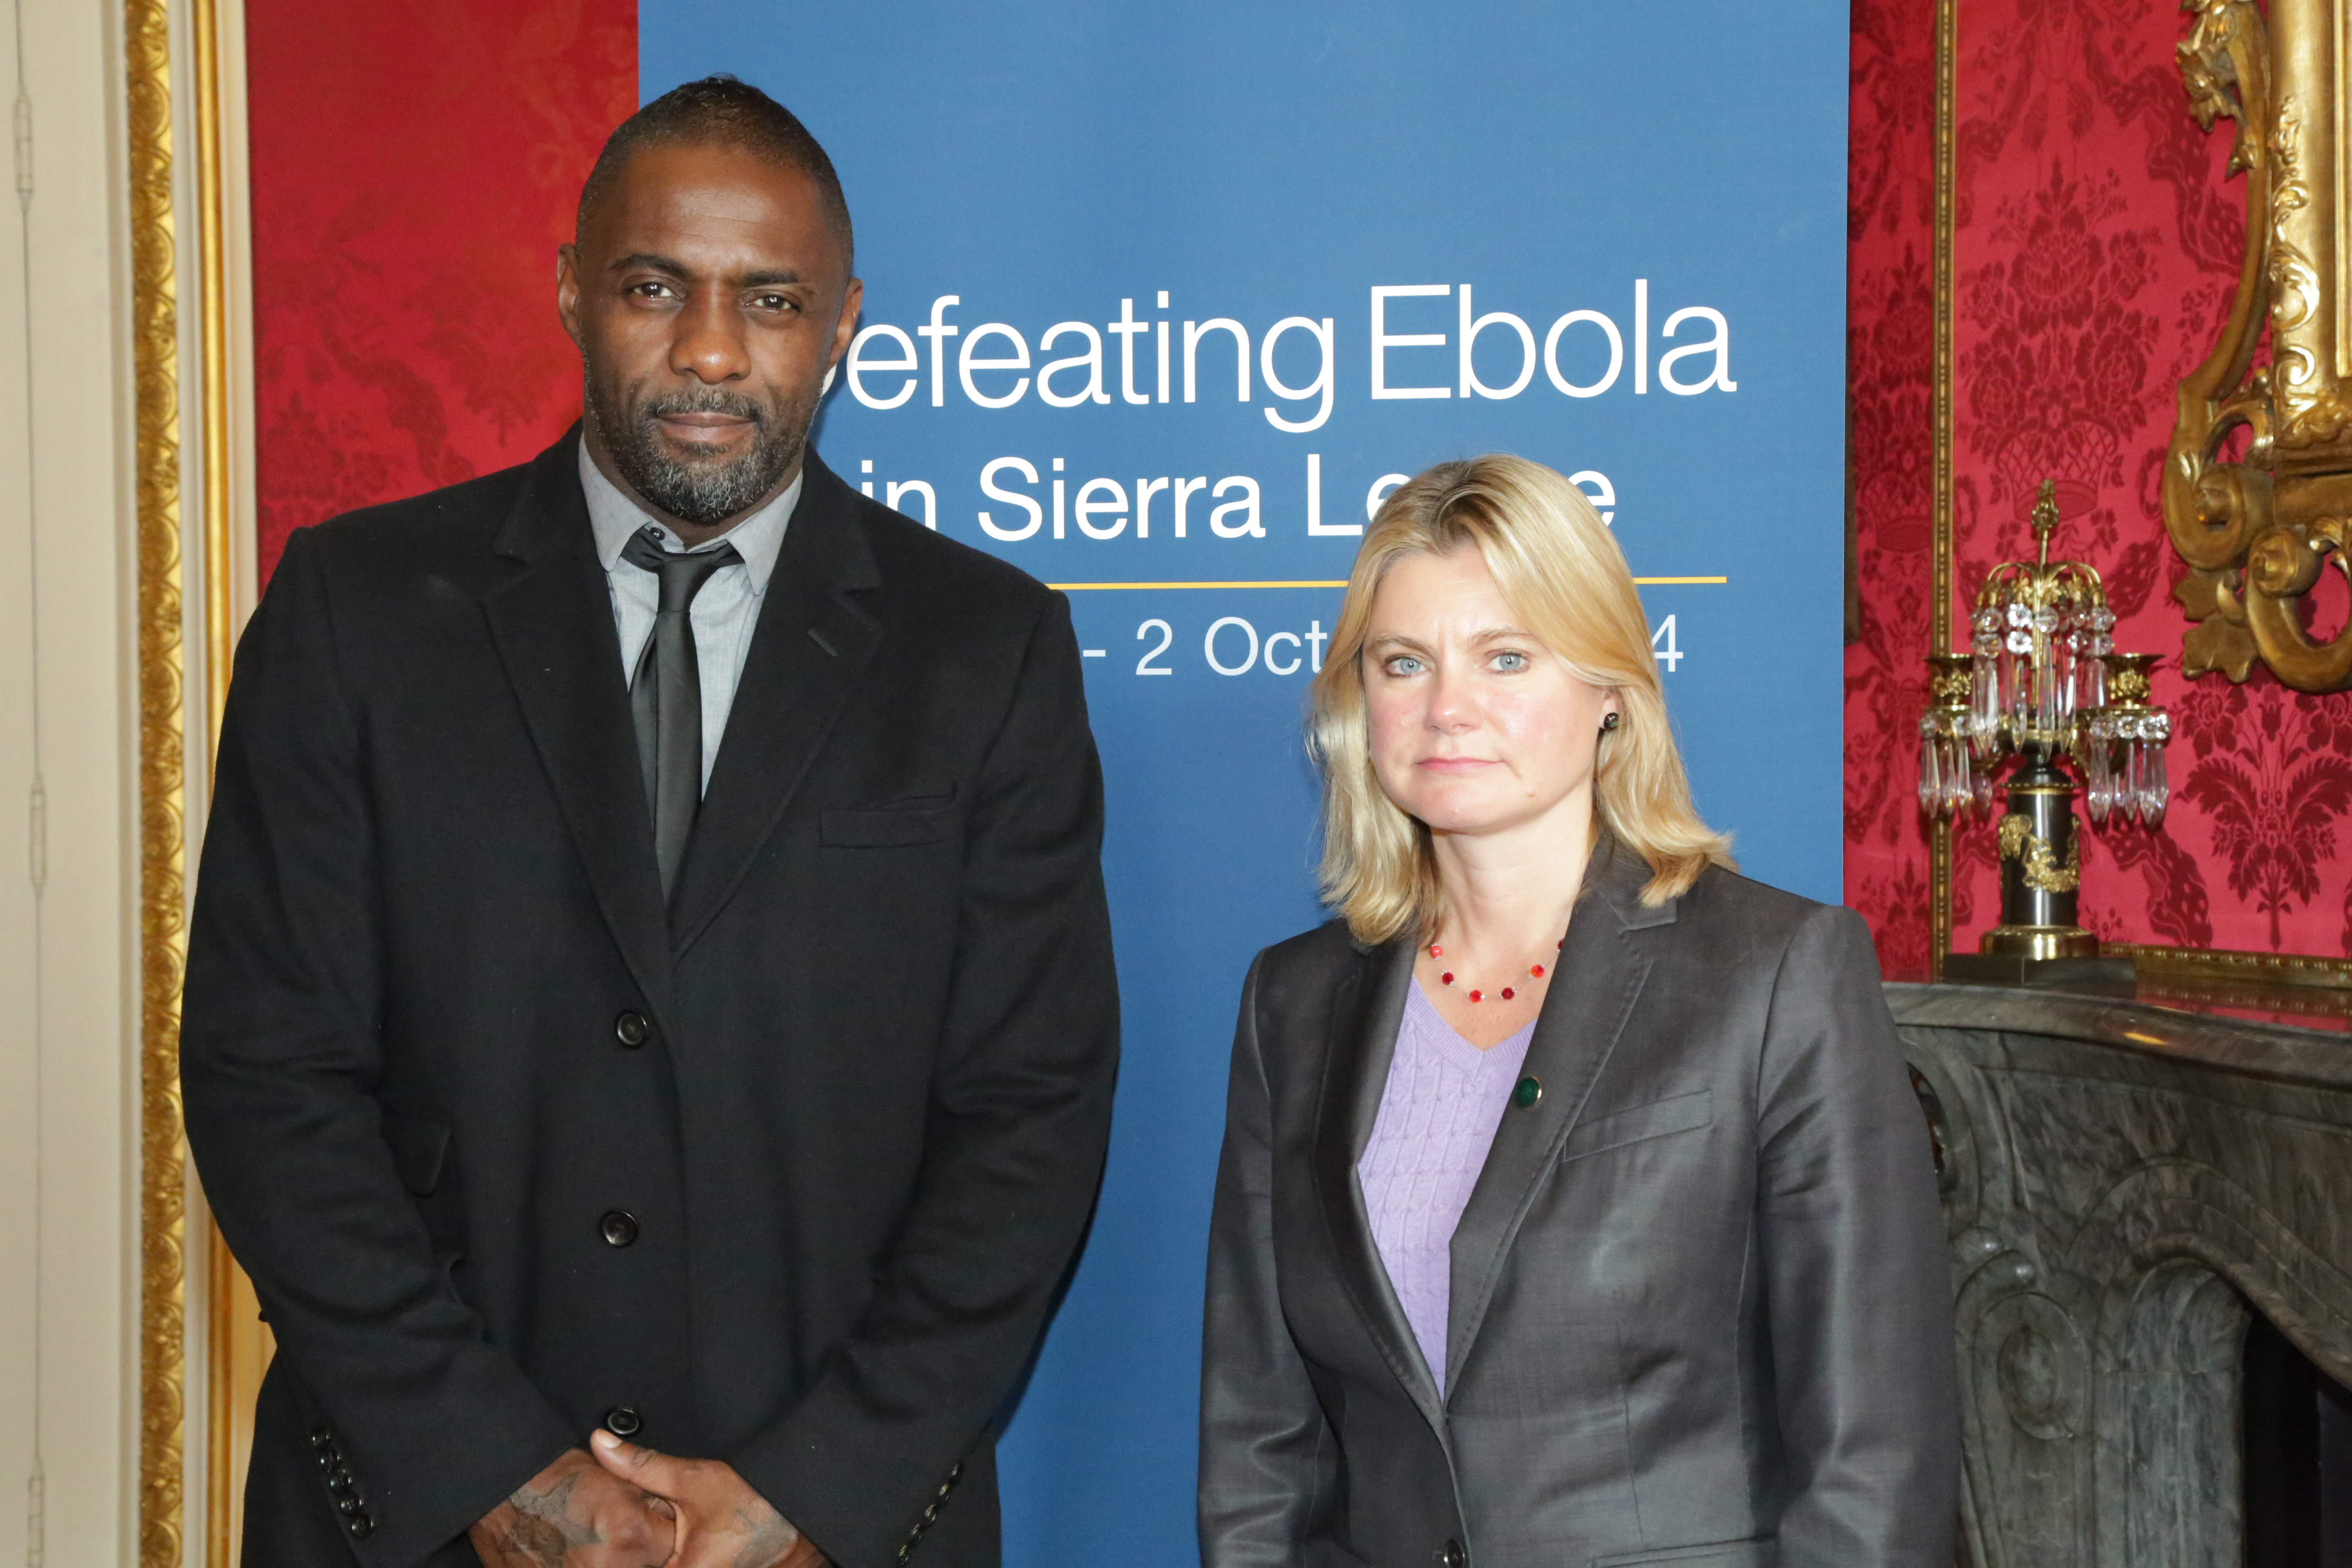 Idris Elba and Secretary of State Justine Greening arrive at the 'Defeating Ebola' conference